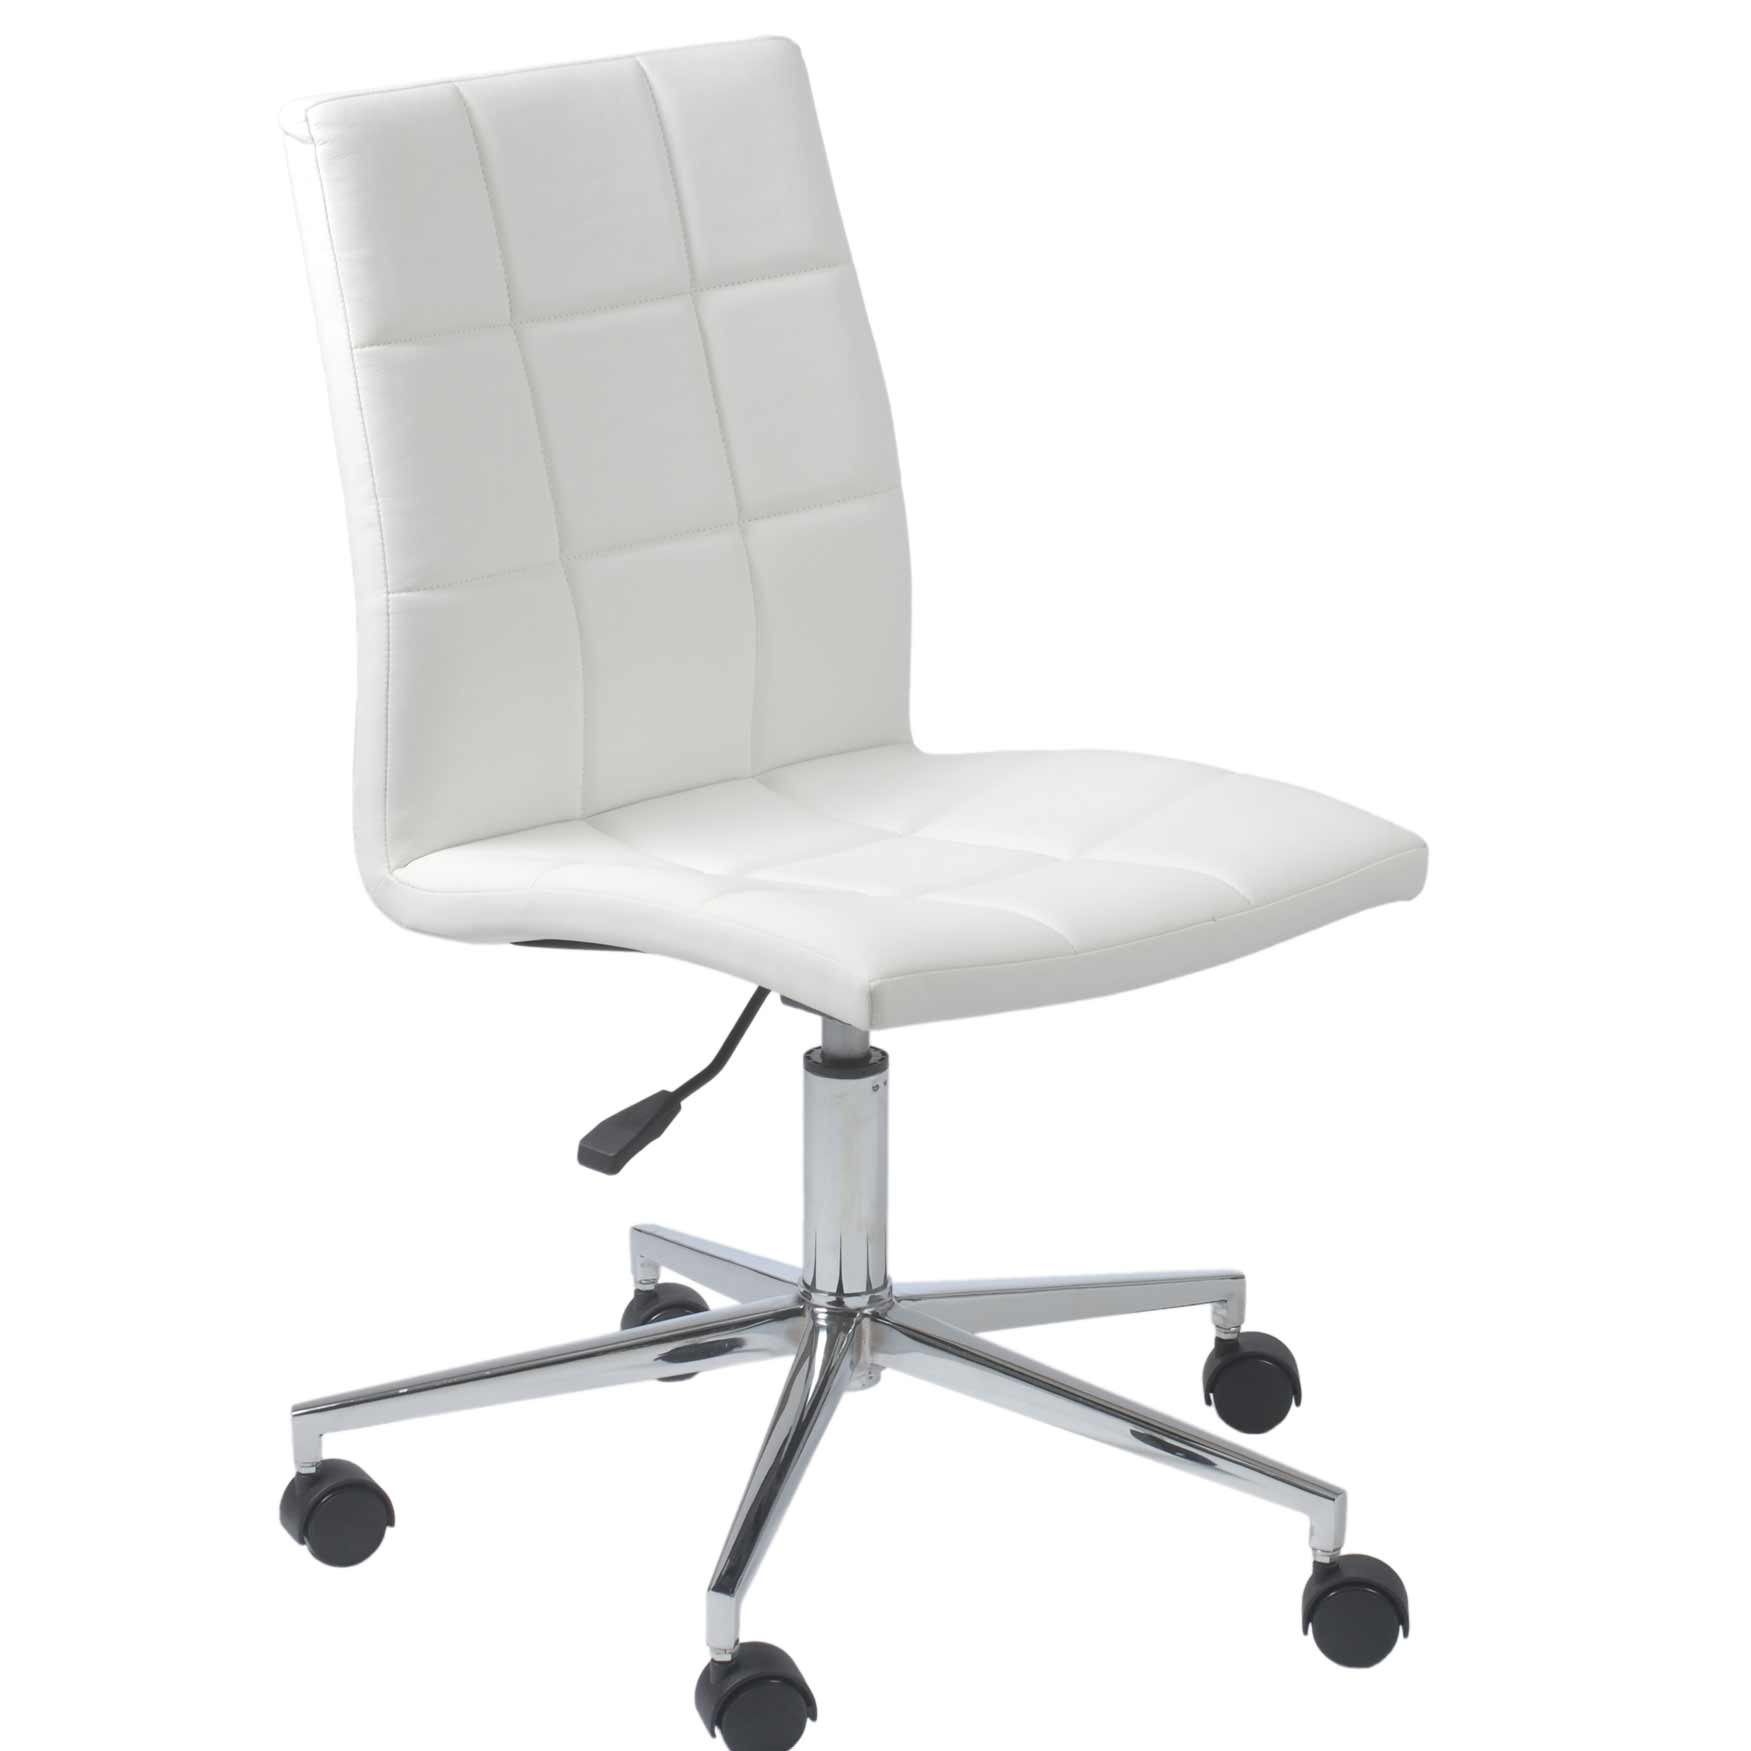 white office chair related keywords suggestions white office chair